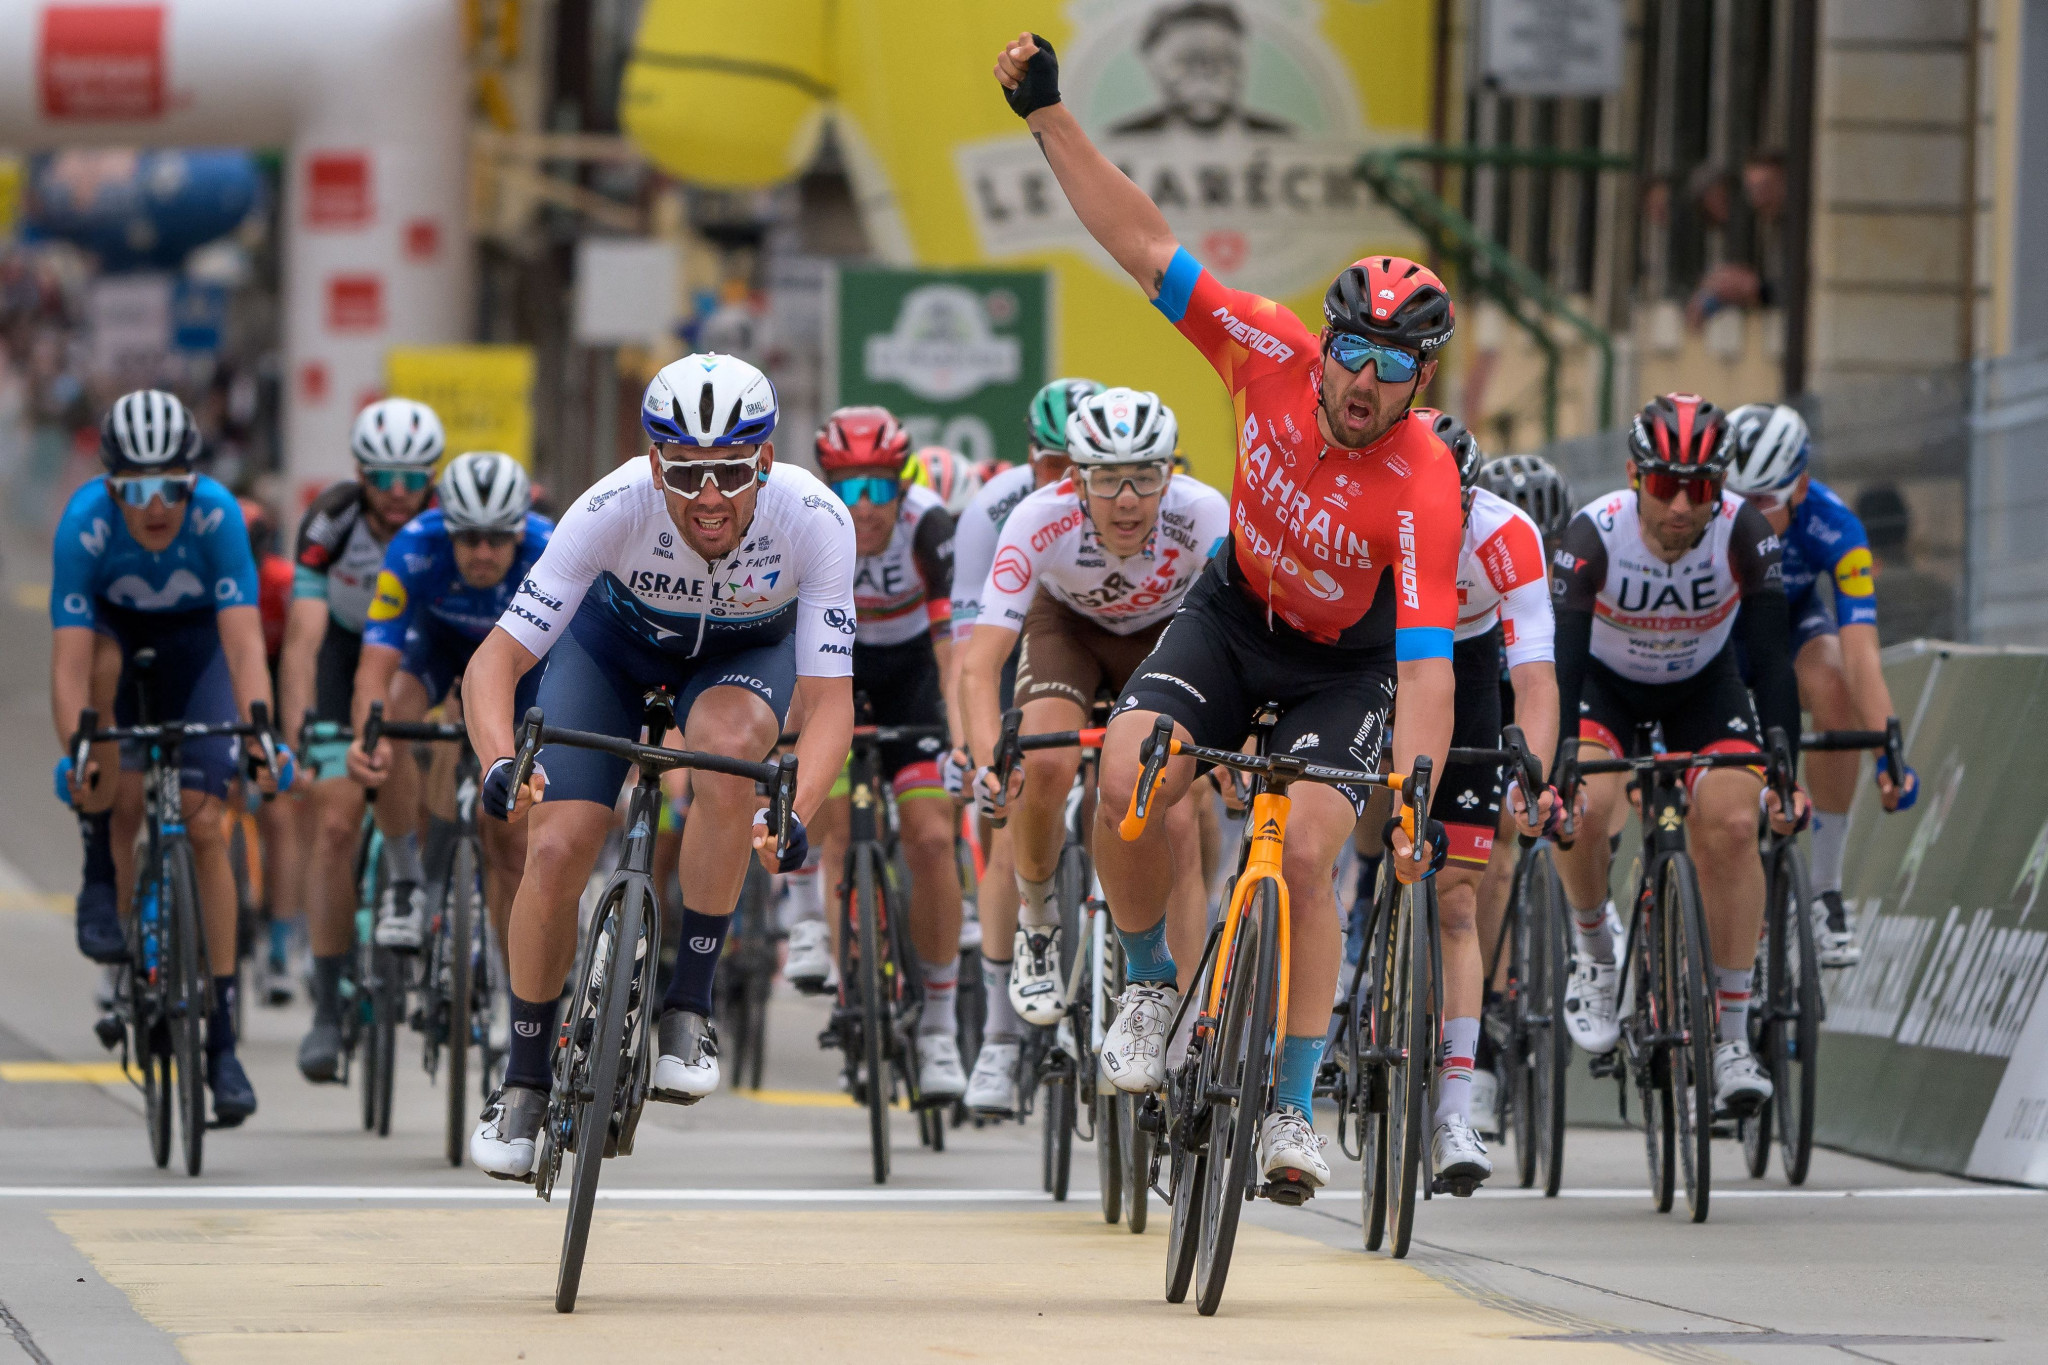 Colbrelli wins stage two of Tour de Romandie in reduced sprint finish